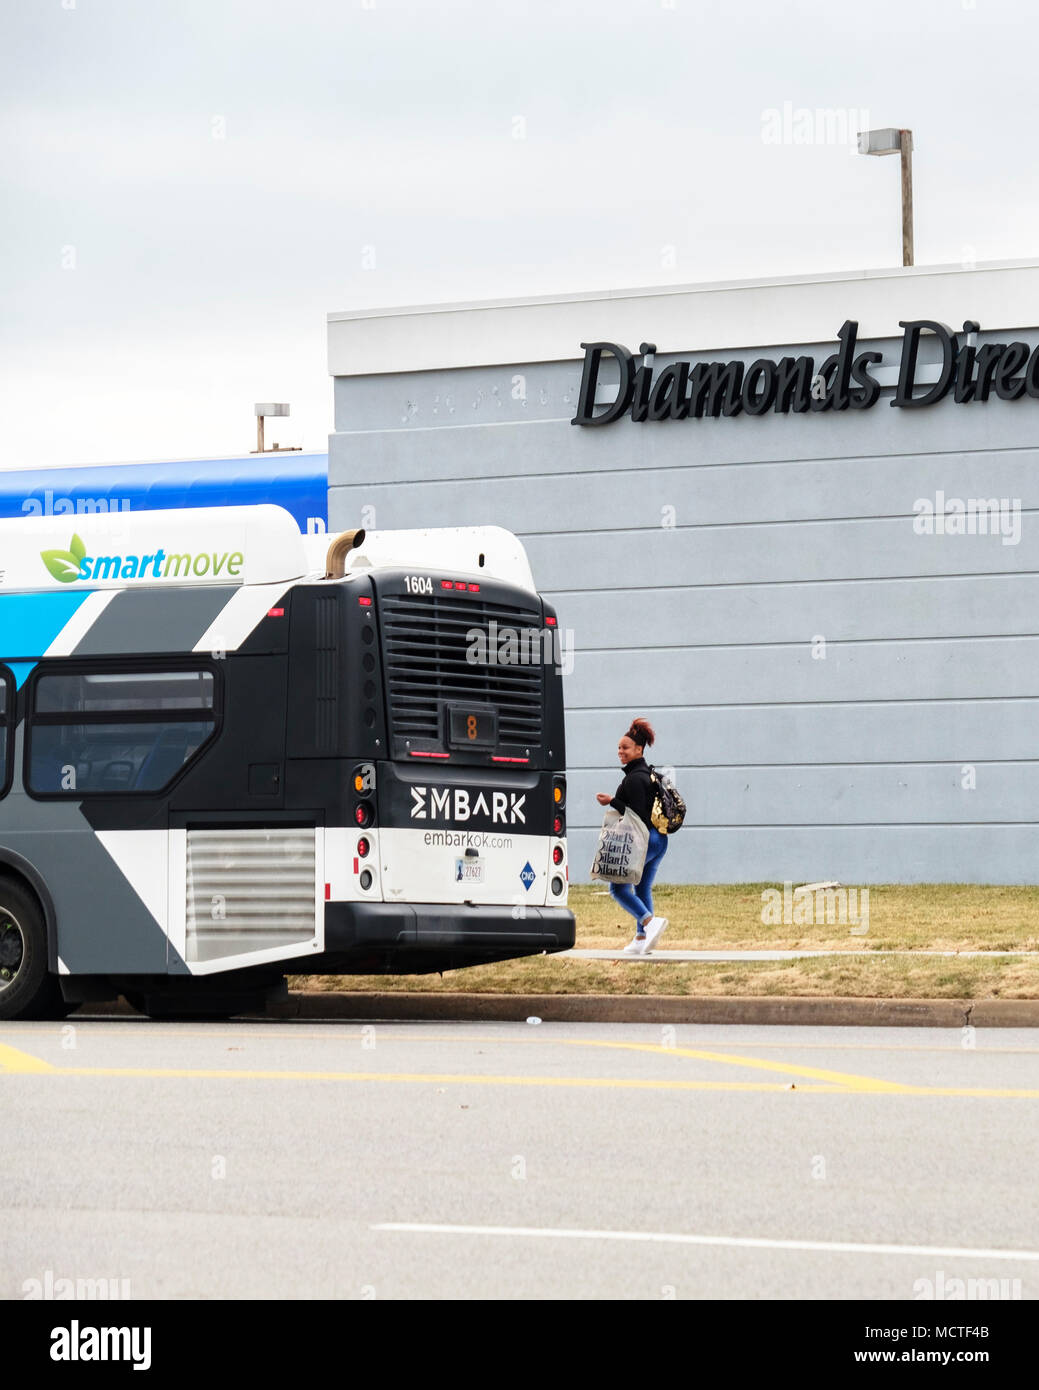 An African American woman prepairs to board an Oklahoma City bus in front of Diamonds Direct store. Oklahoma City, Oklahoma, USA. - Stock Image